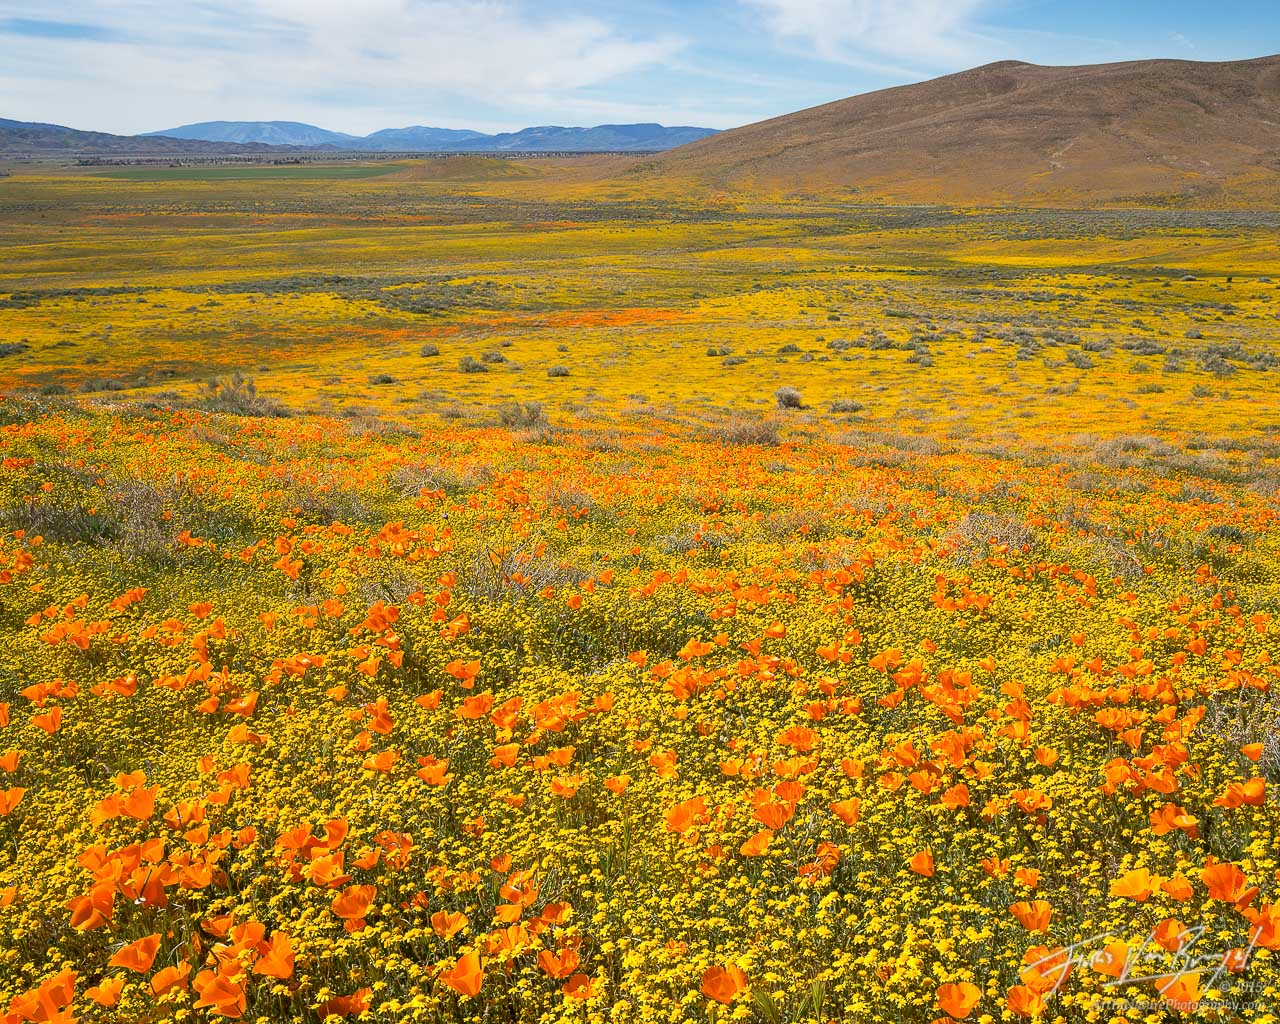 California Poppies and Goldfields, Antelope Valley, California, photo